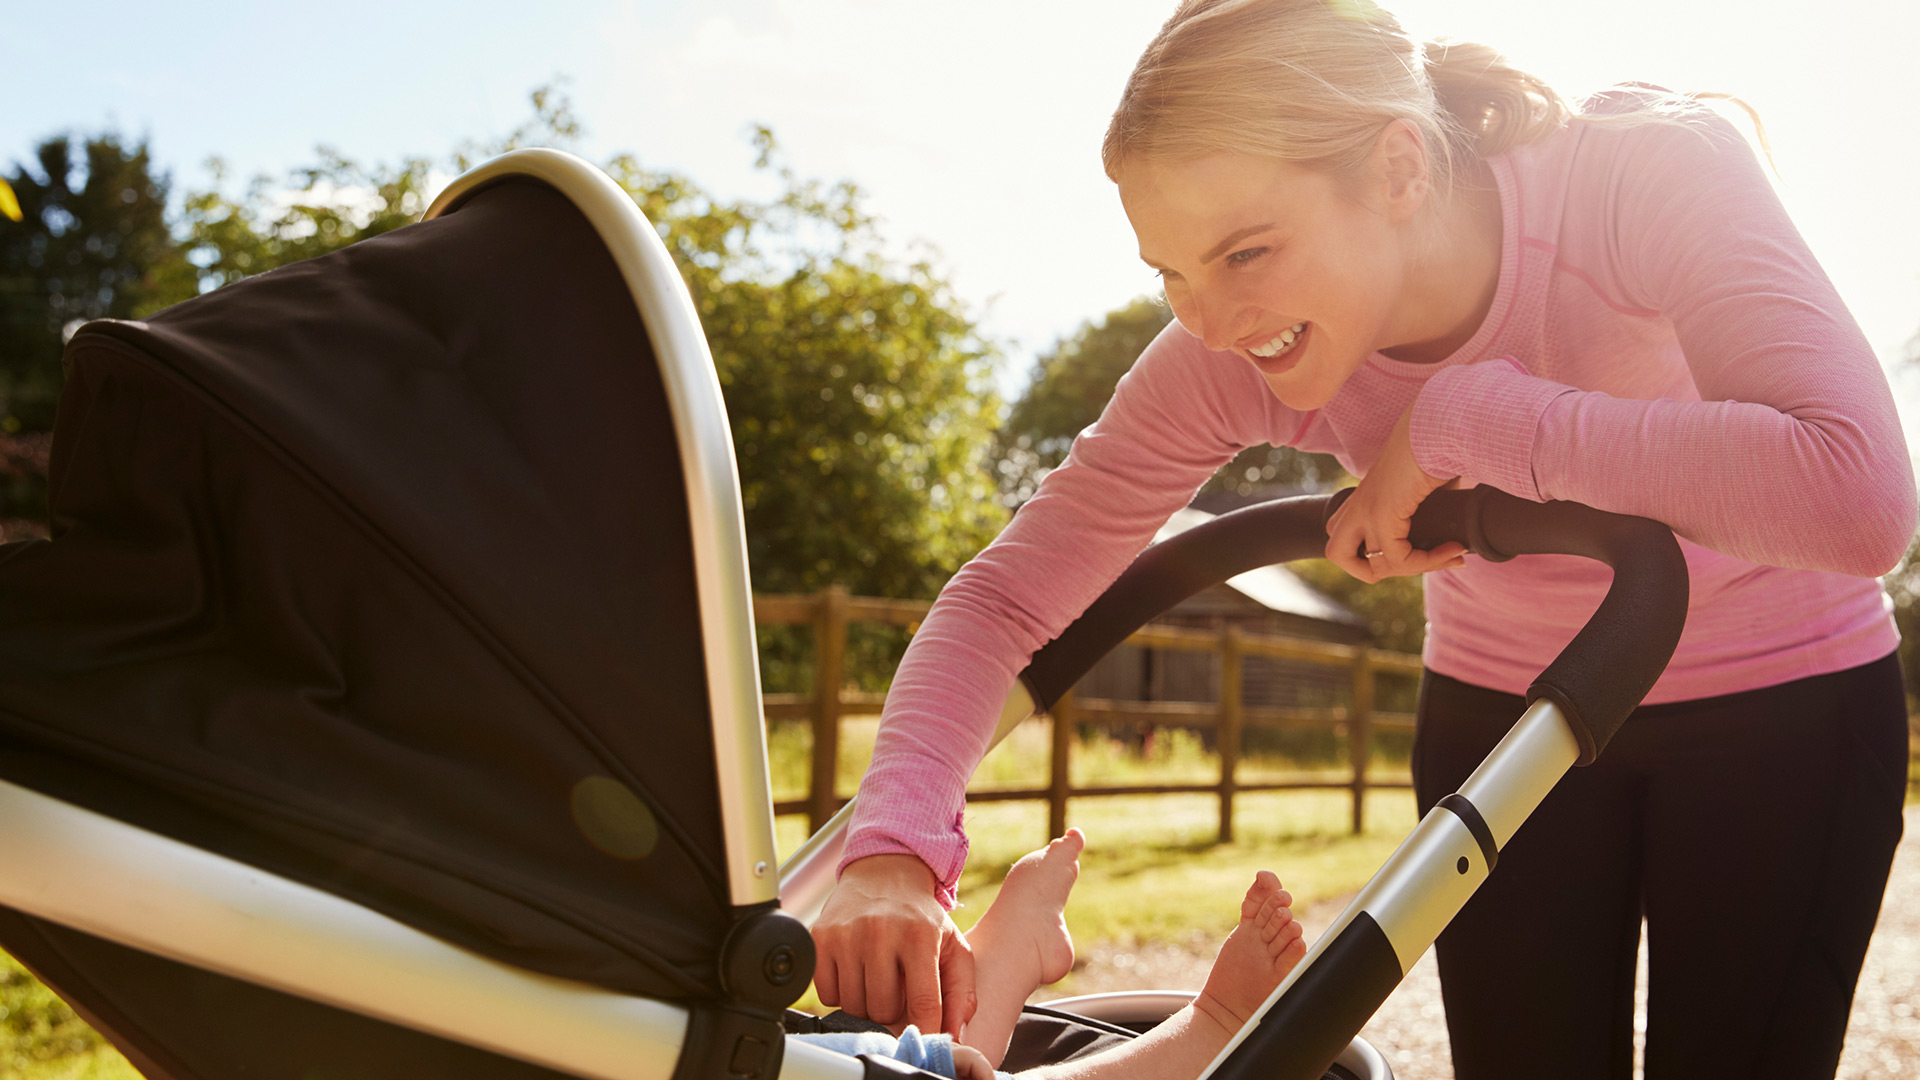 No matter how much preparation is done during pregnancy, most new moms understandably have lots of questions about caring for their newborn once their bundle of joy arrives. Follow along for tips from a pediatrician on how to take the best care possible of your newborn, and, just as important, yourself.